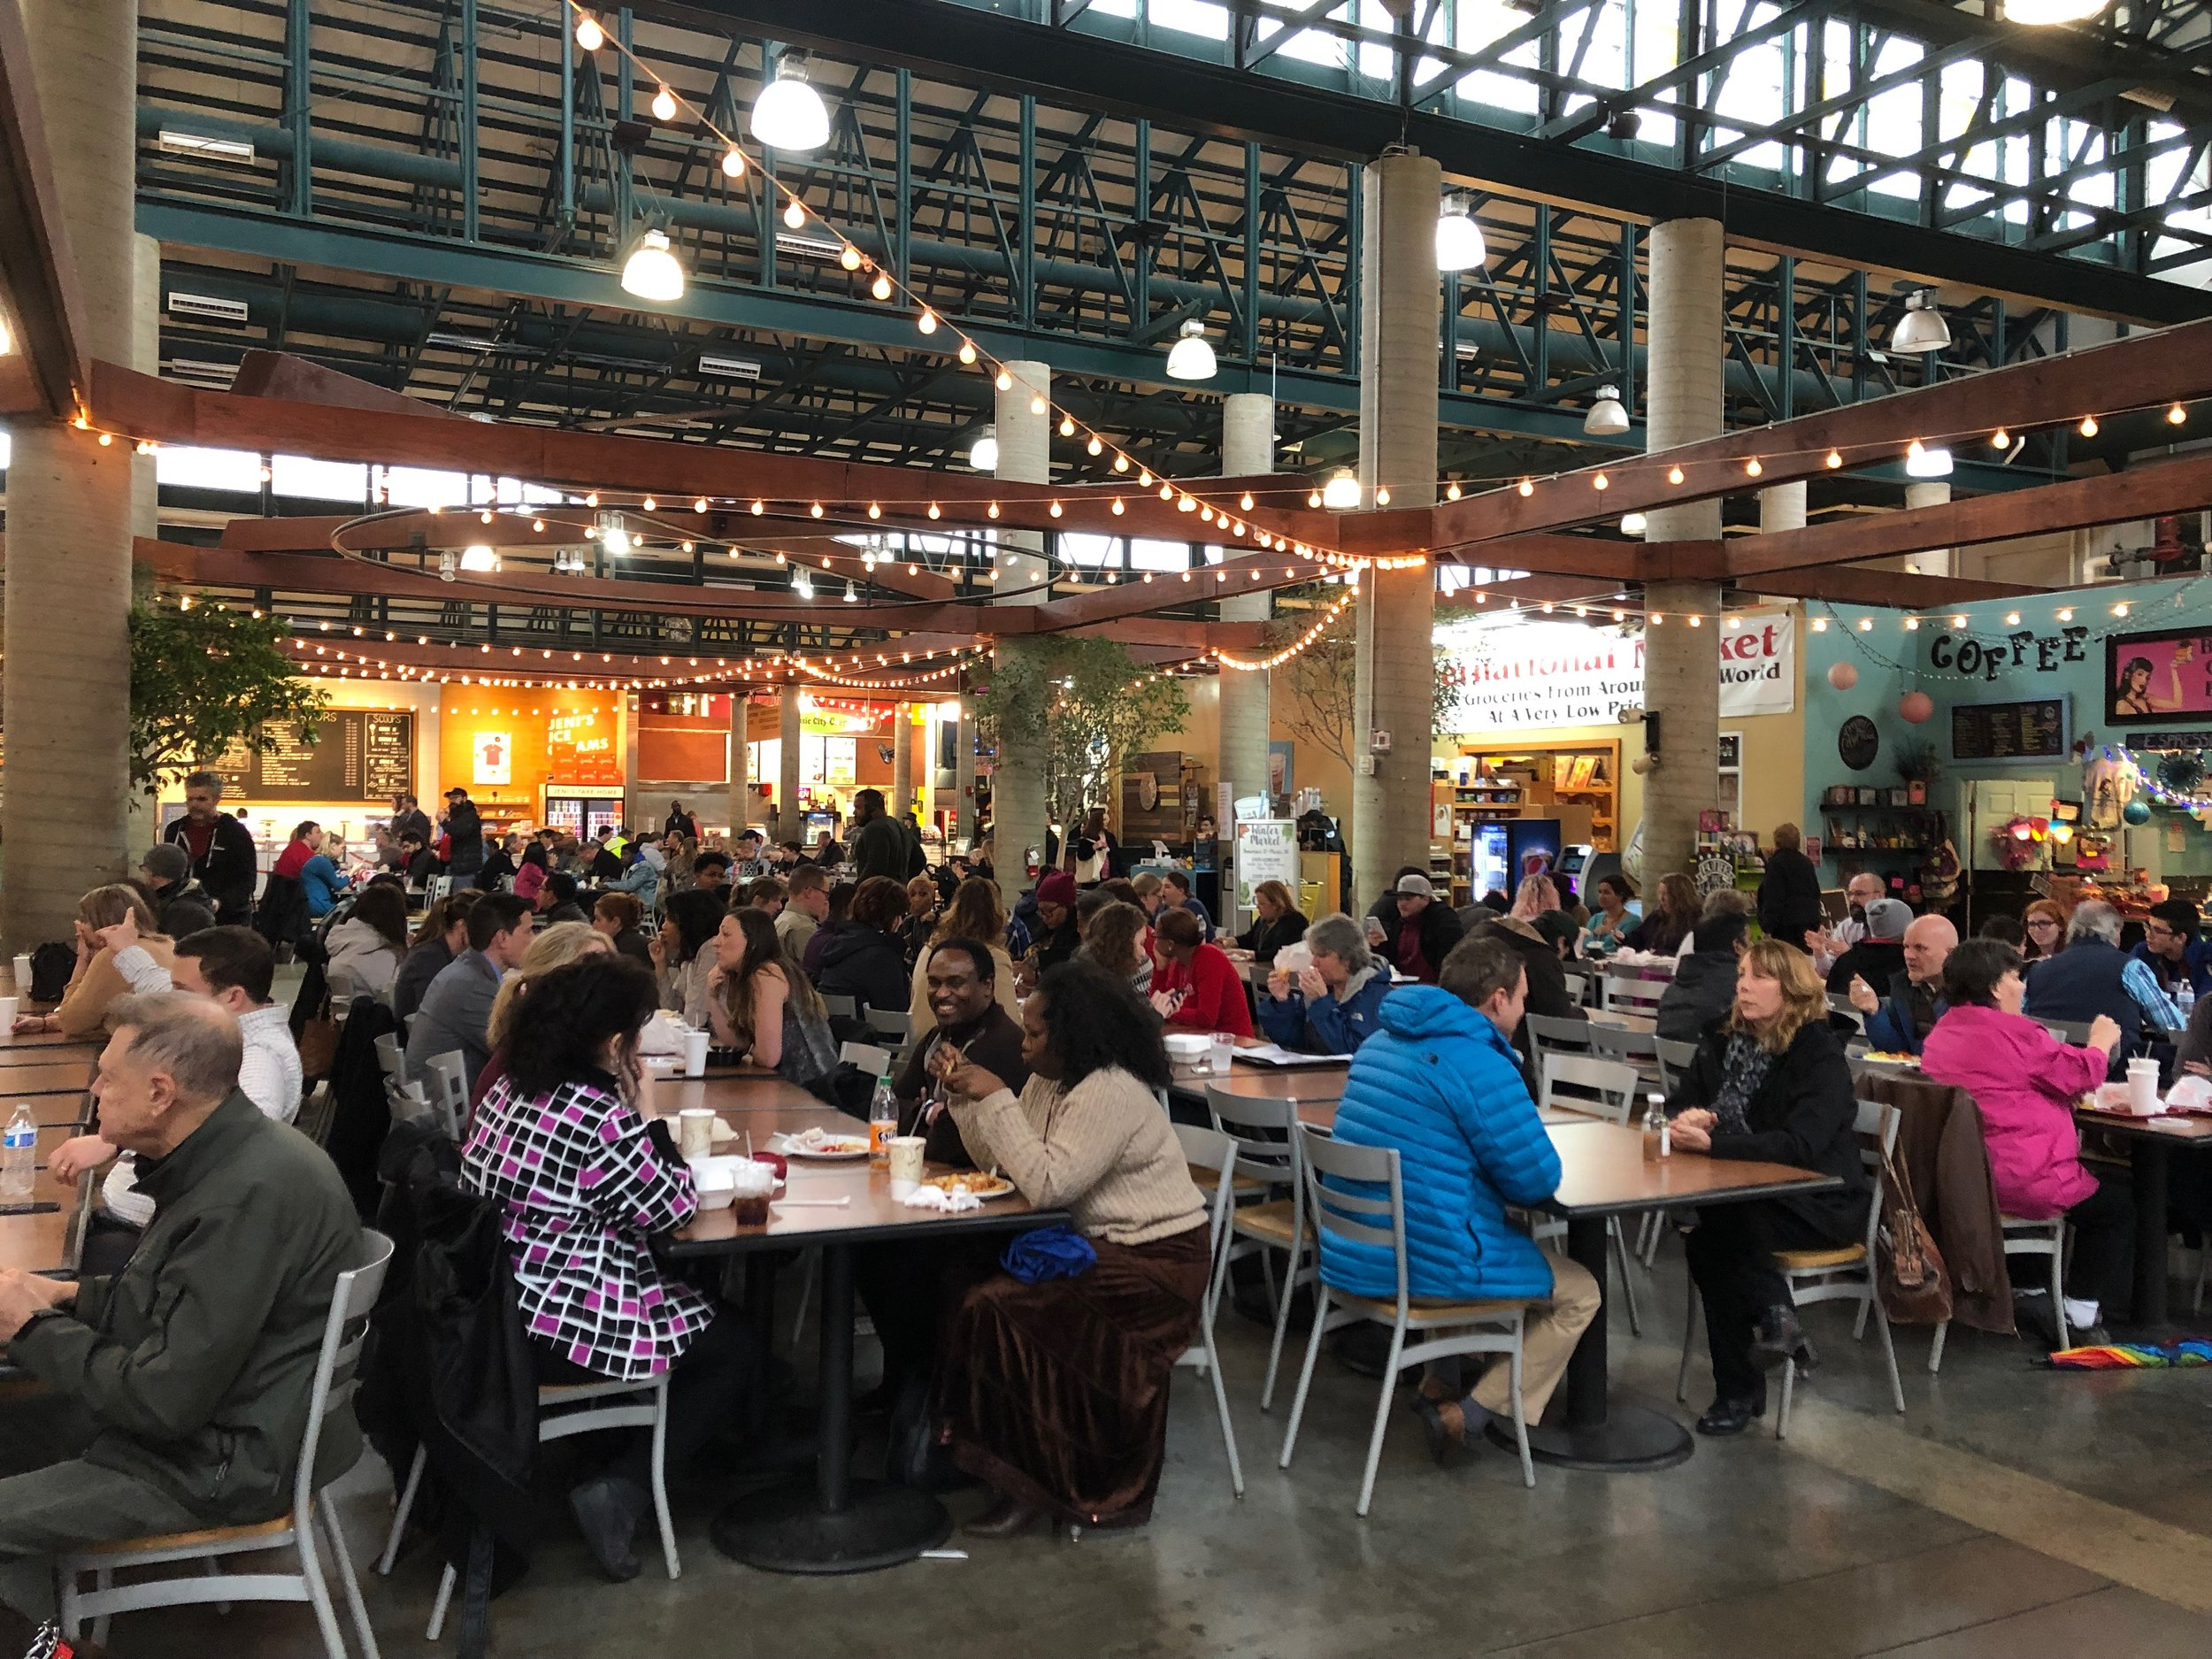 Lunchtime at the Market can be busy, but service is typically fast. Outdoor seating is popular when the weather warms.